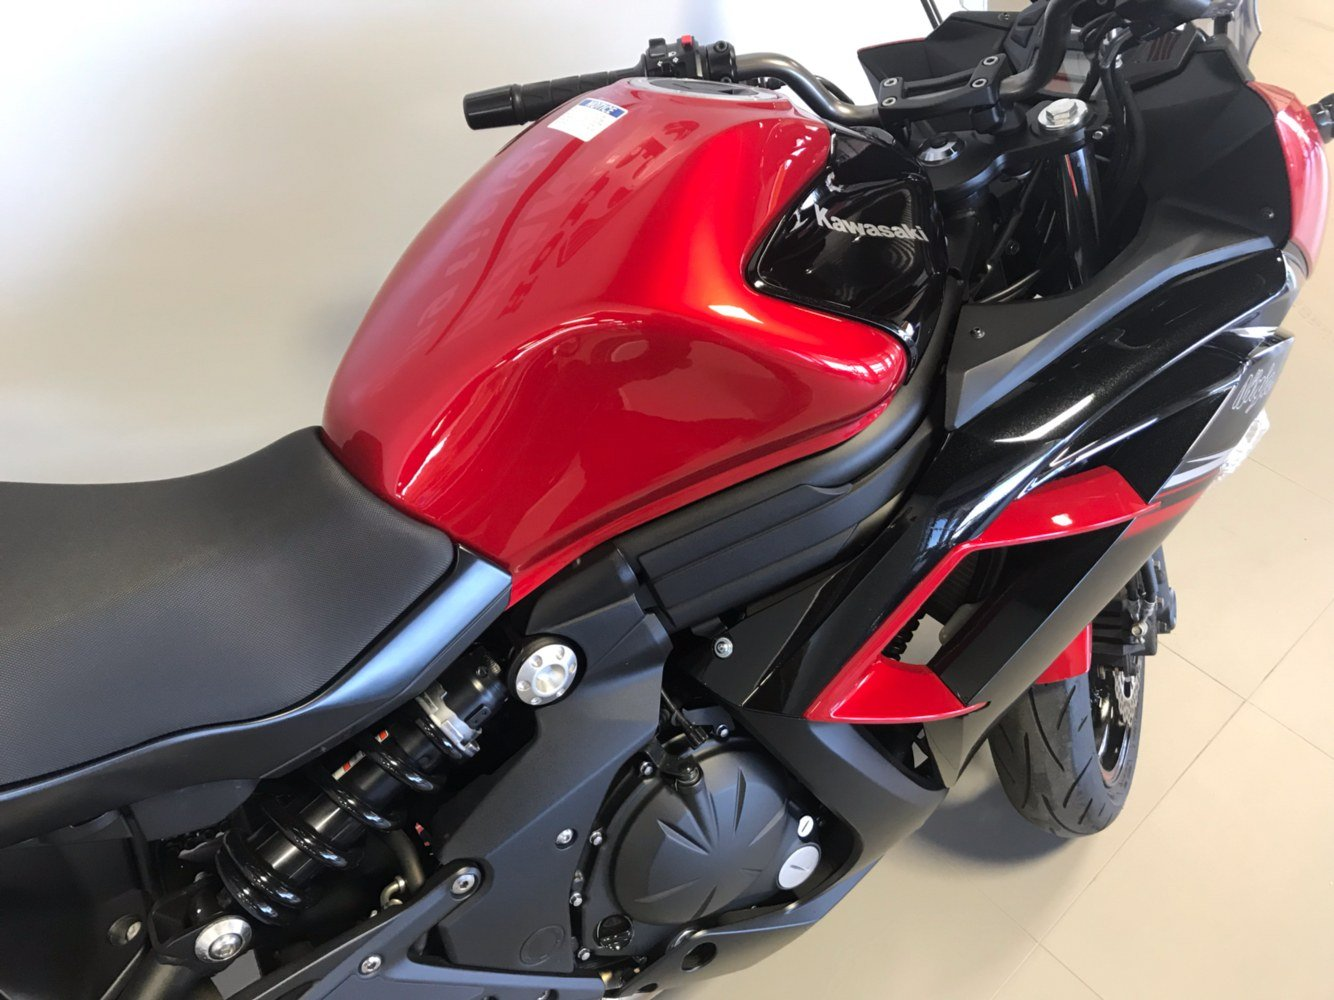 2016 Kawasaki Ninja 650 in Springfield, Missouri - Photo 14